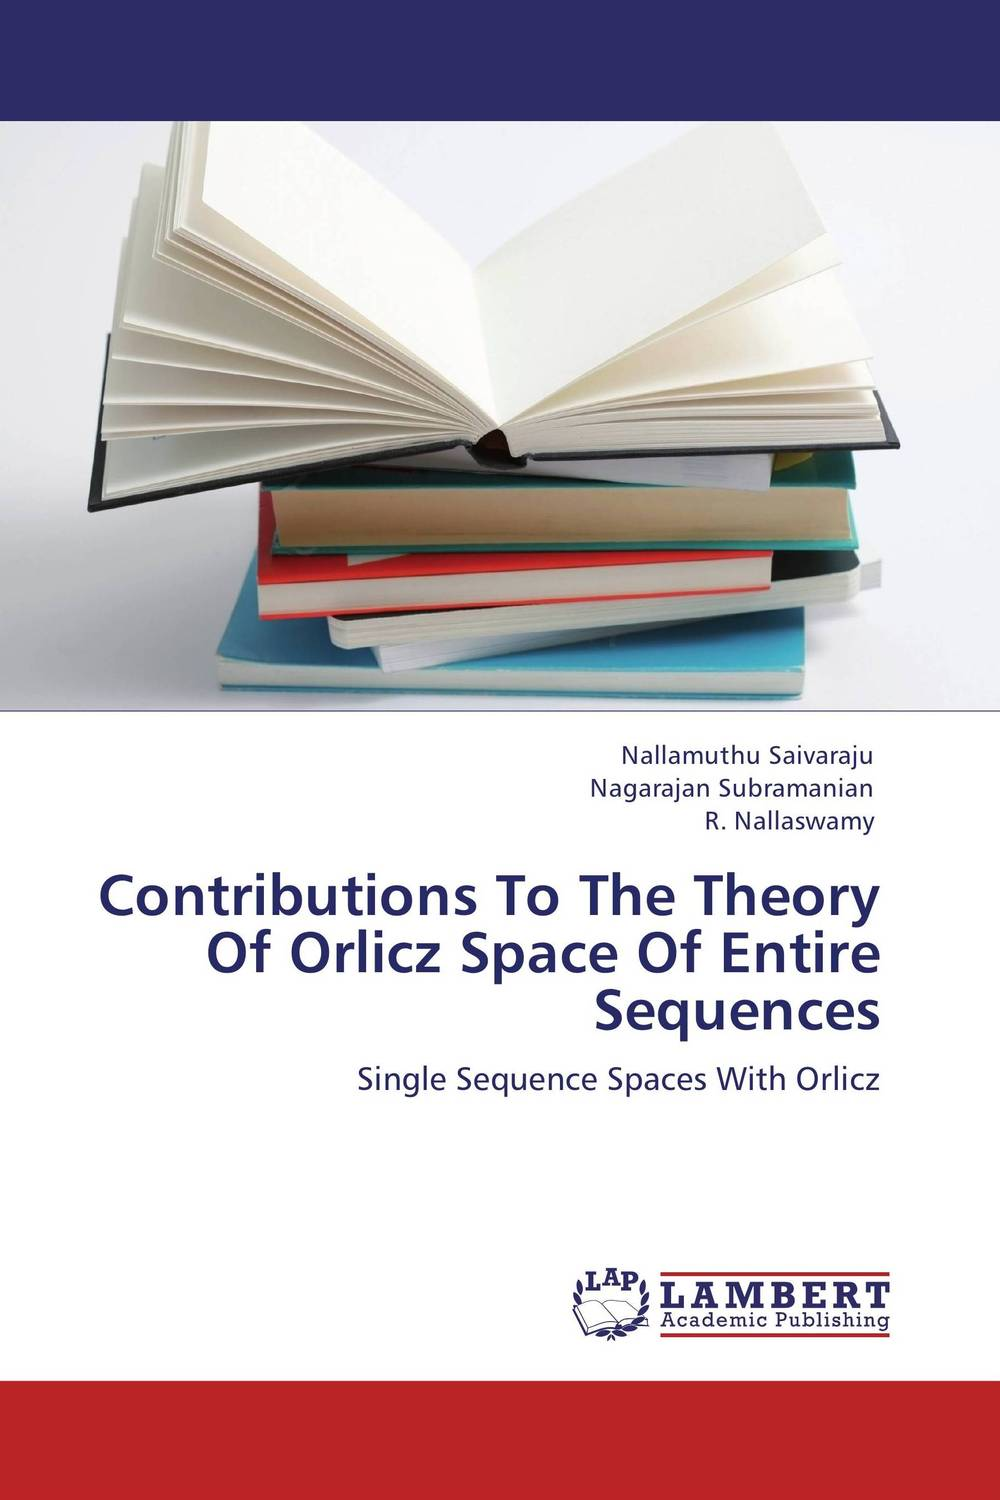 Contributions To The Theory Of Orlicz Space Of Entire Sequences the life and contributions of negus mikael of wollo